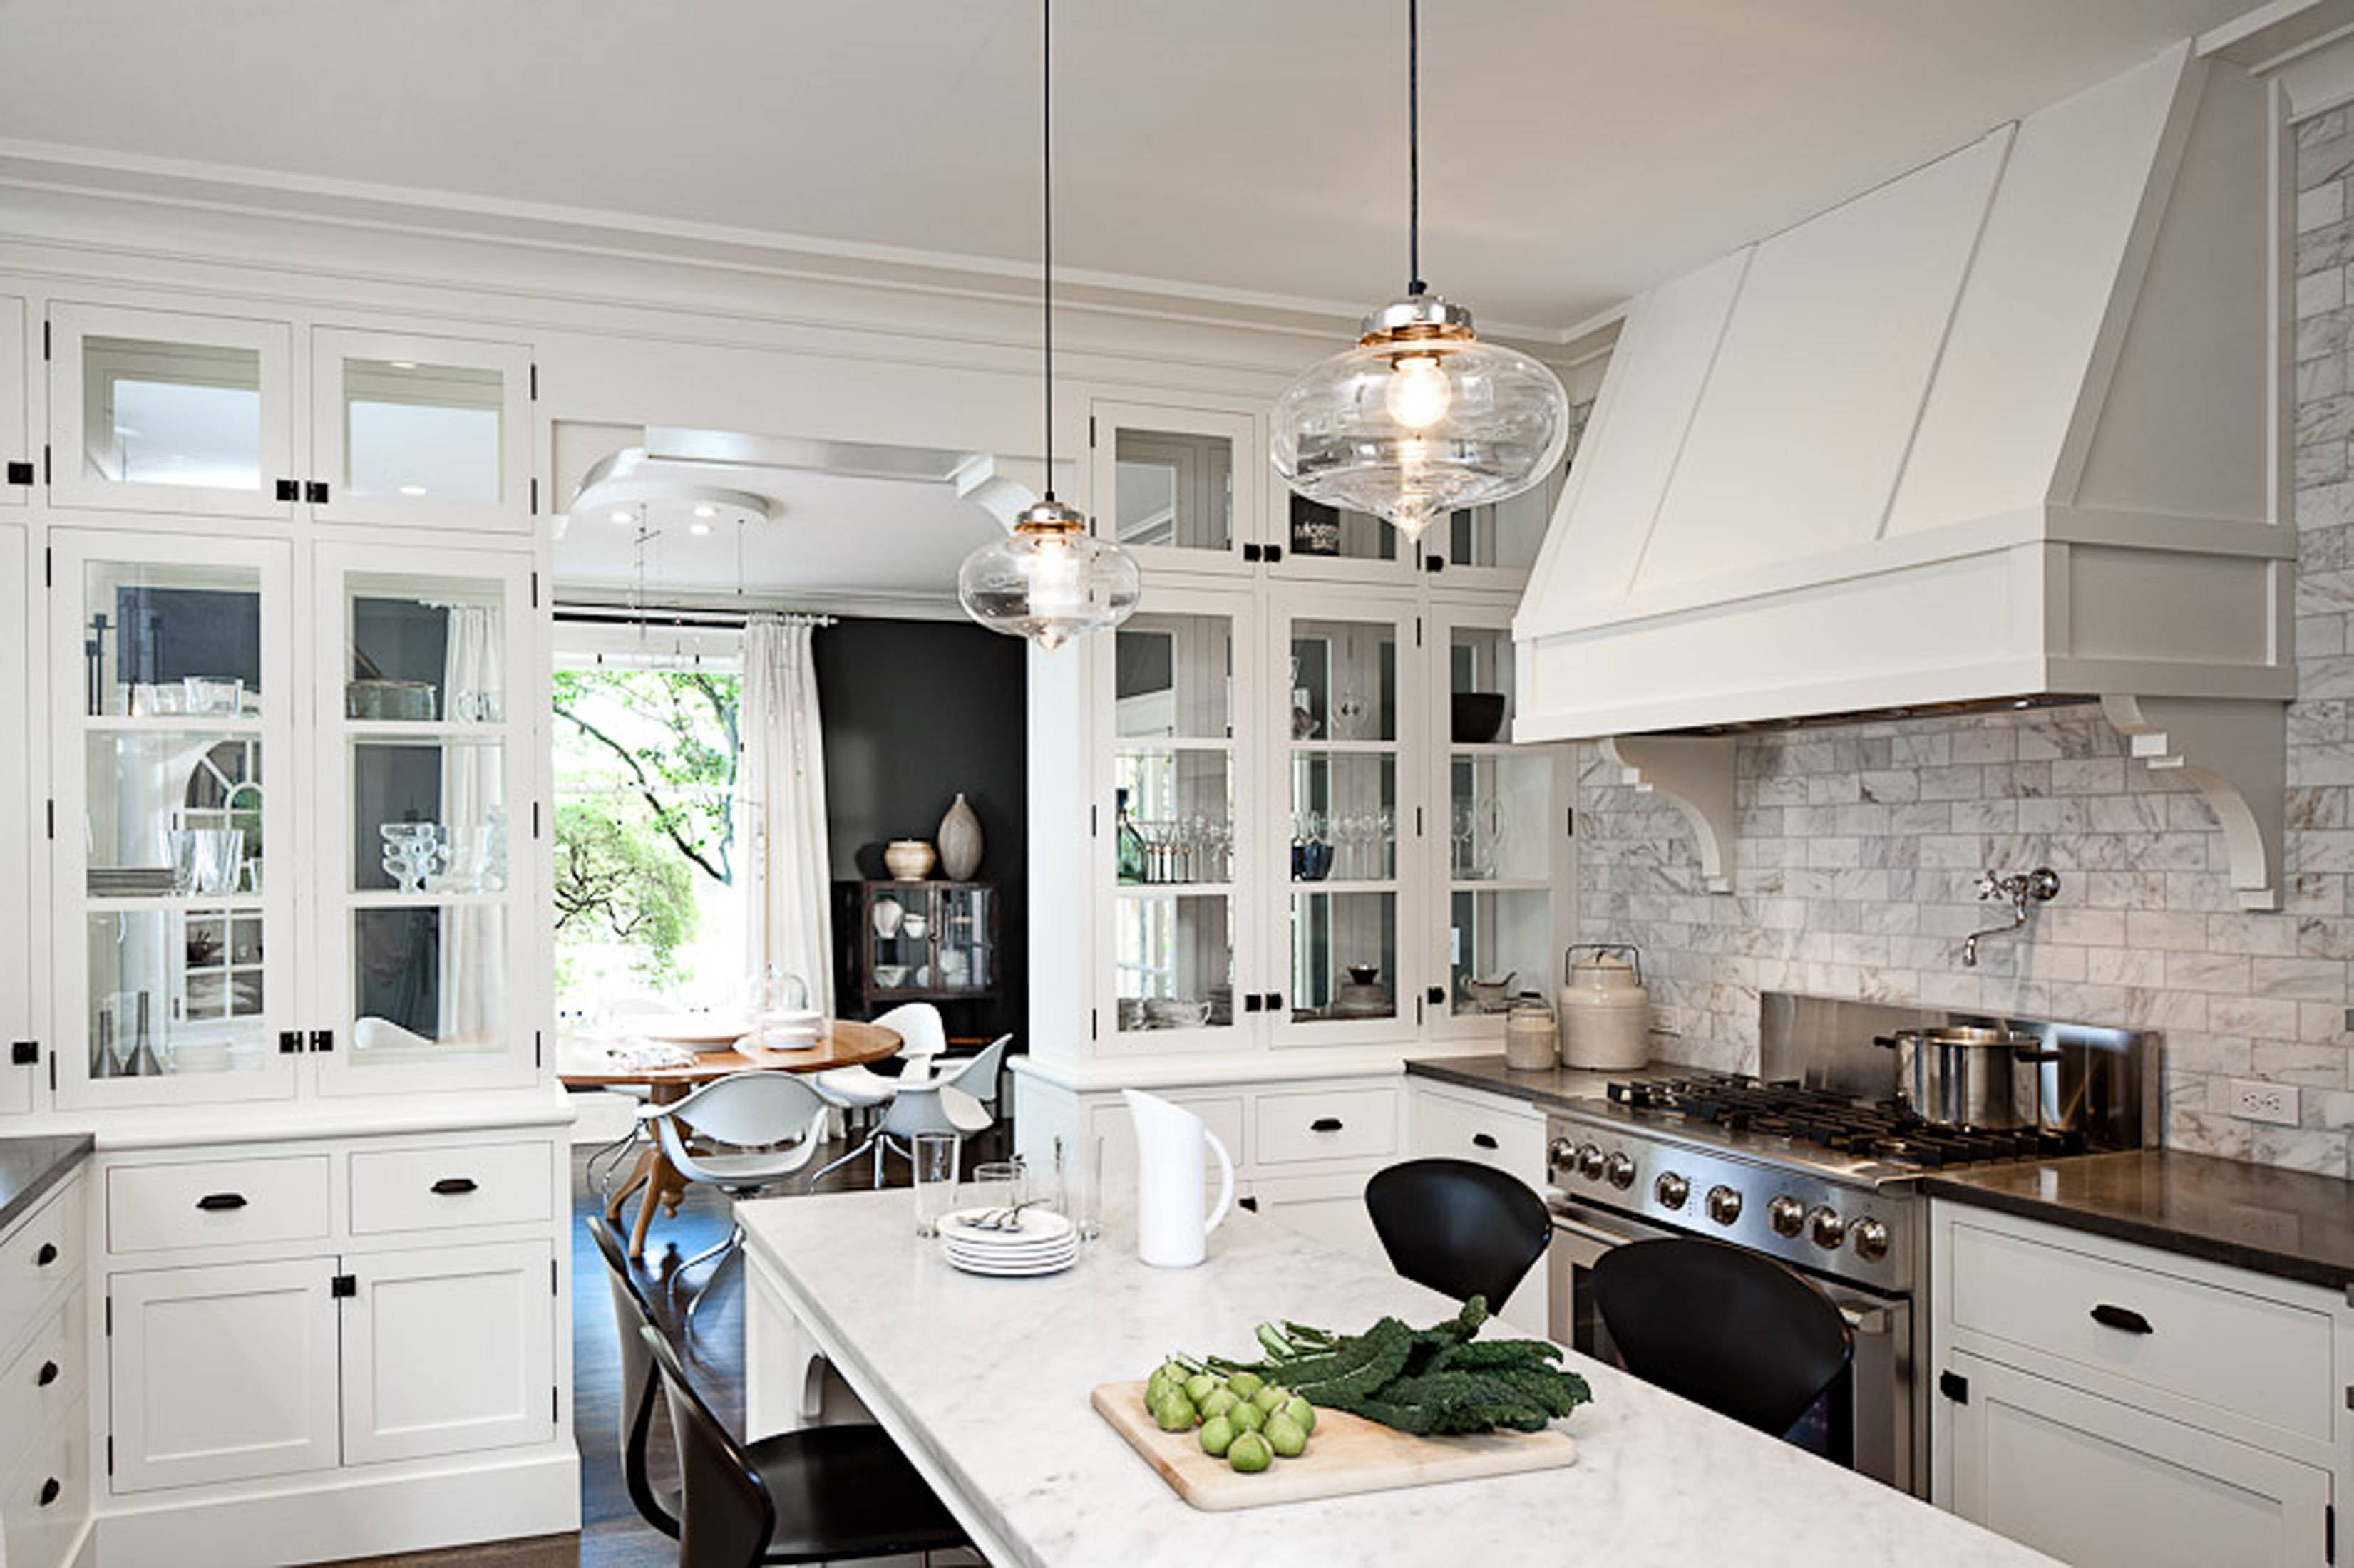 Pendant Lighting Ideas: Kitchen Island Pendant Light Useful regarding Island Pendant Light Fixtures (Image 14 of 15)